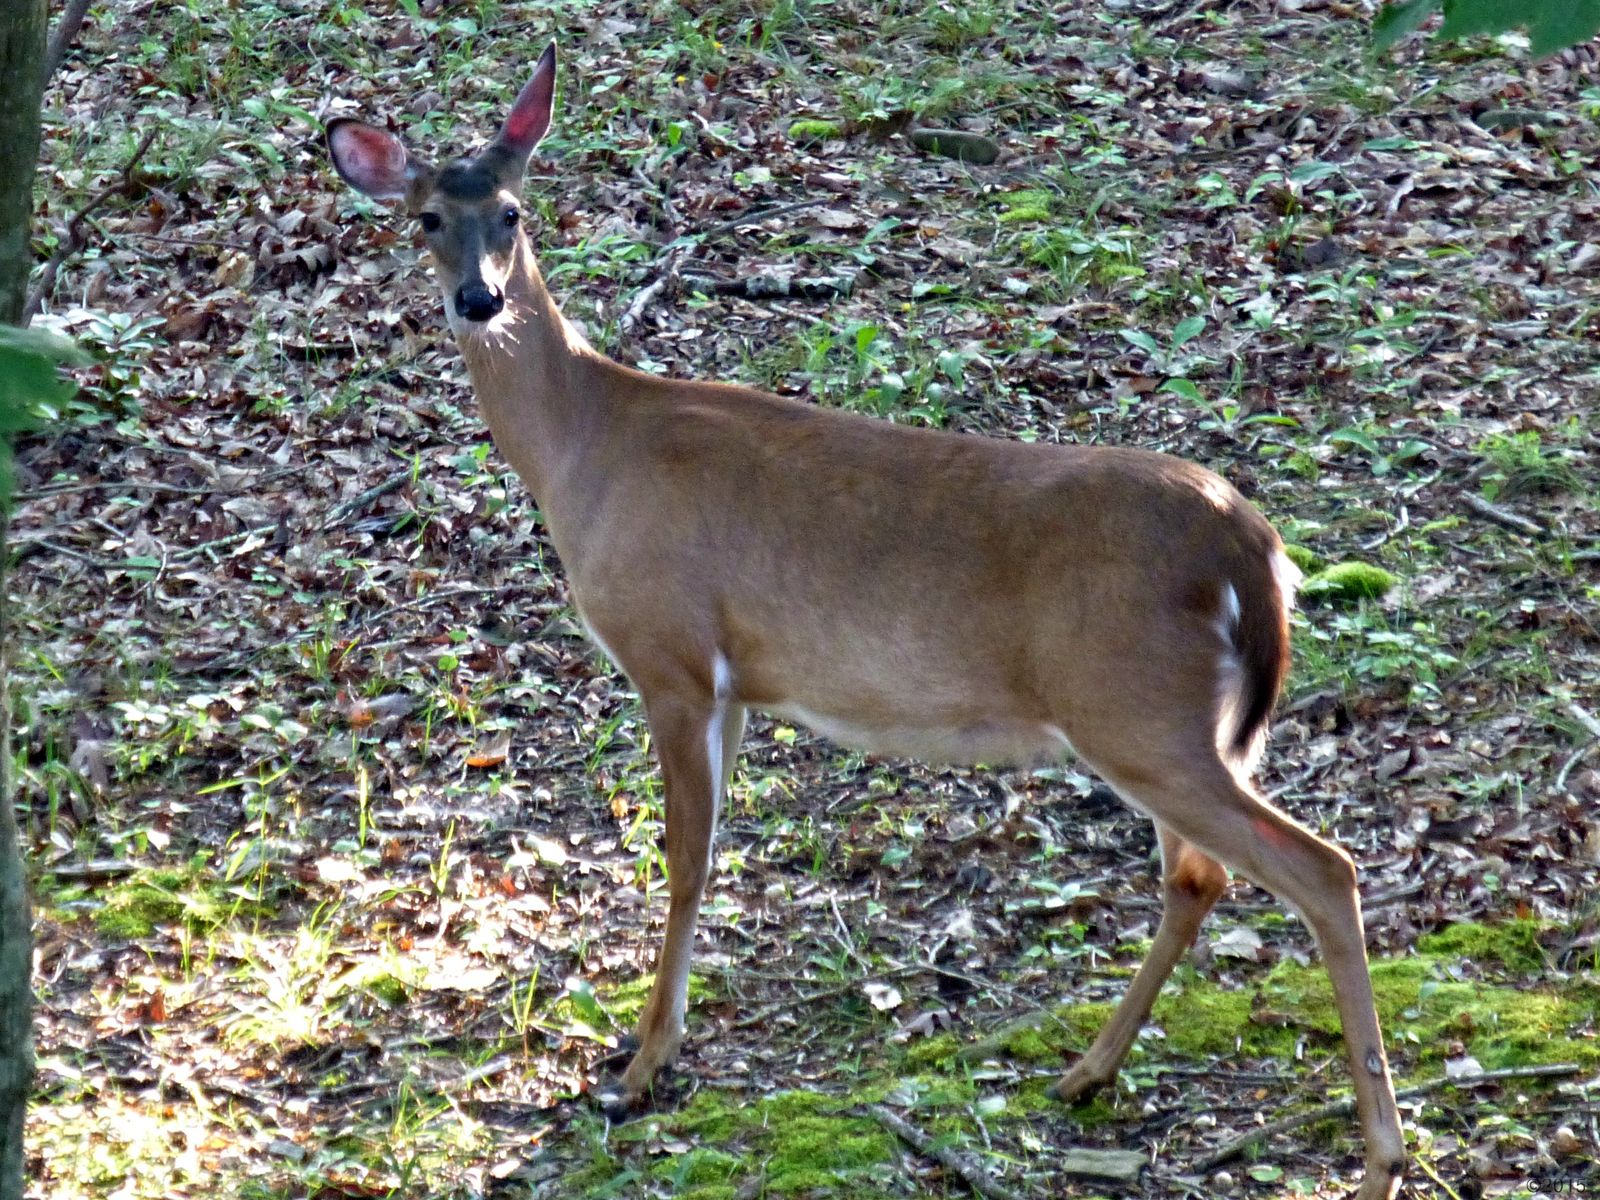 May 20, 2015 - pregnant doe in Bent Tree